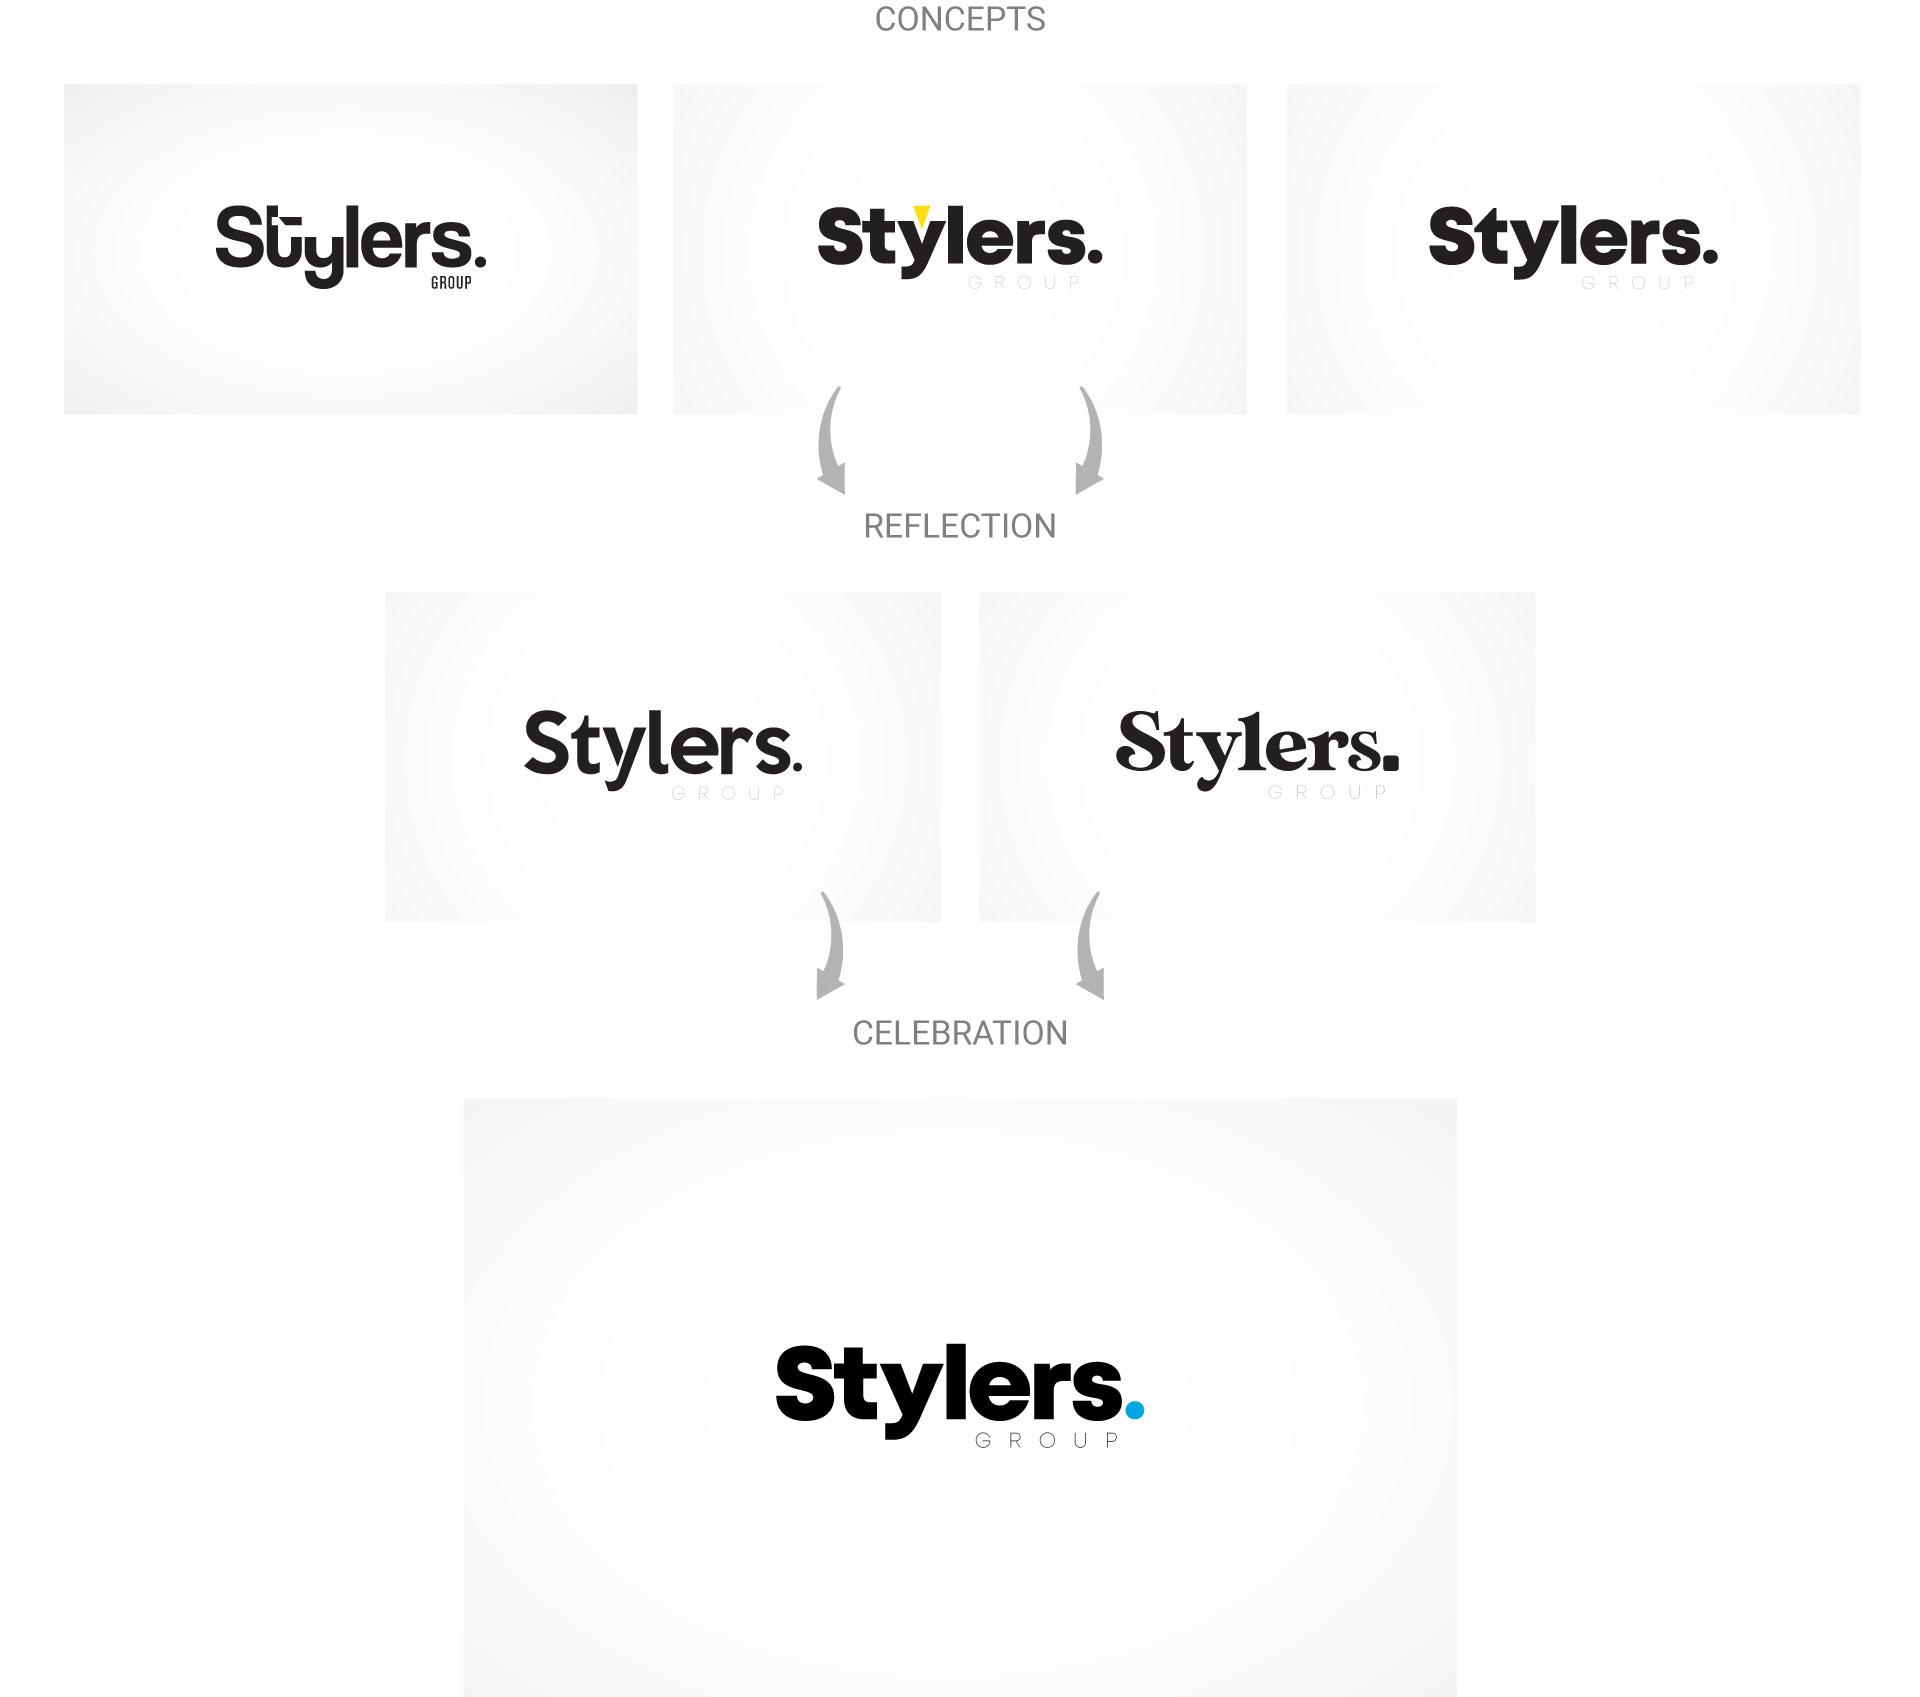 stylers-group-brand-logo-design-by-mapleweb-vancouver-canada-white-shirt-mock